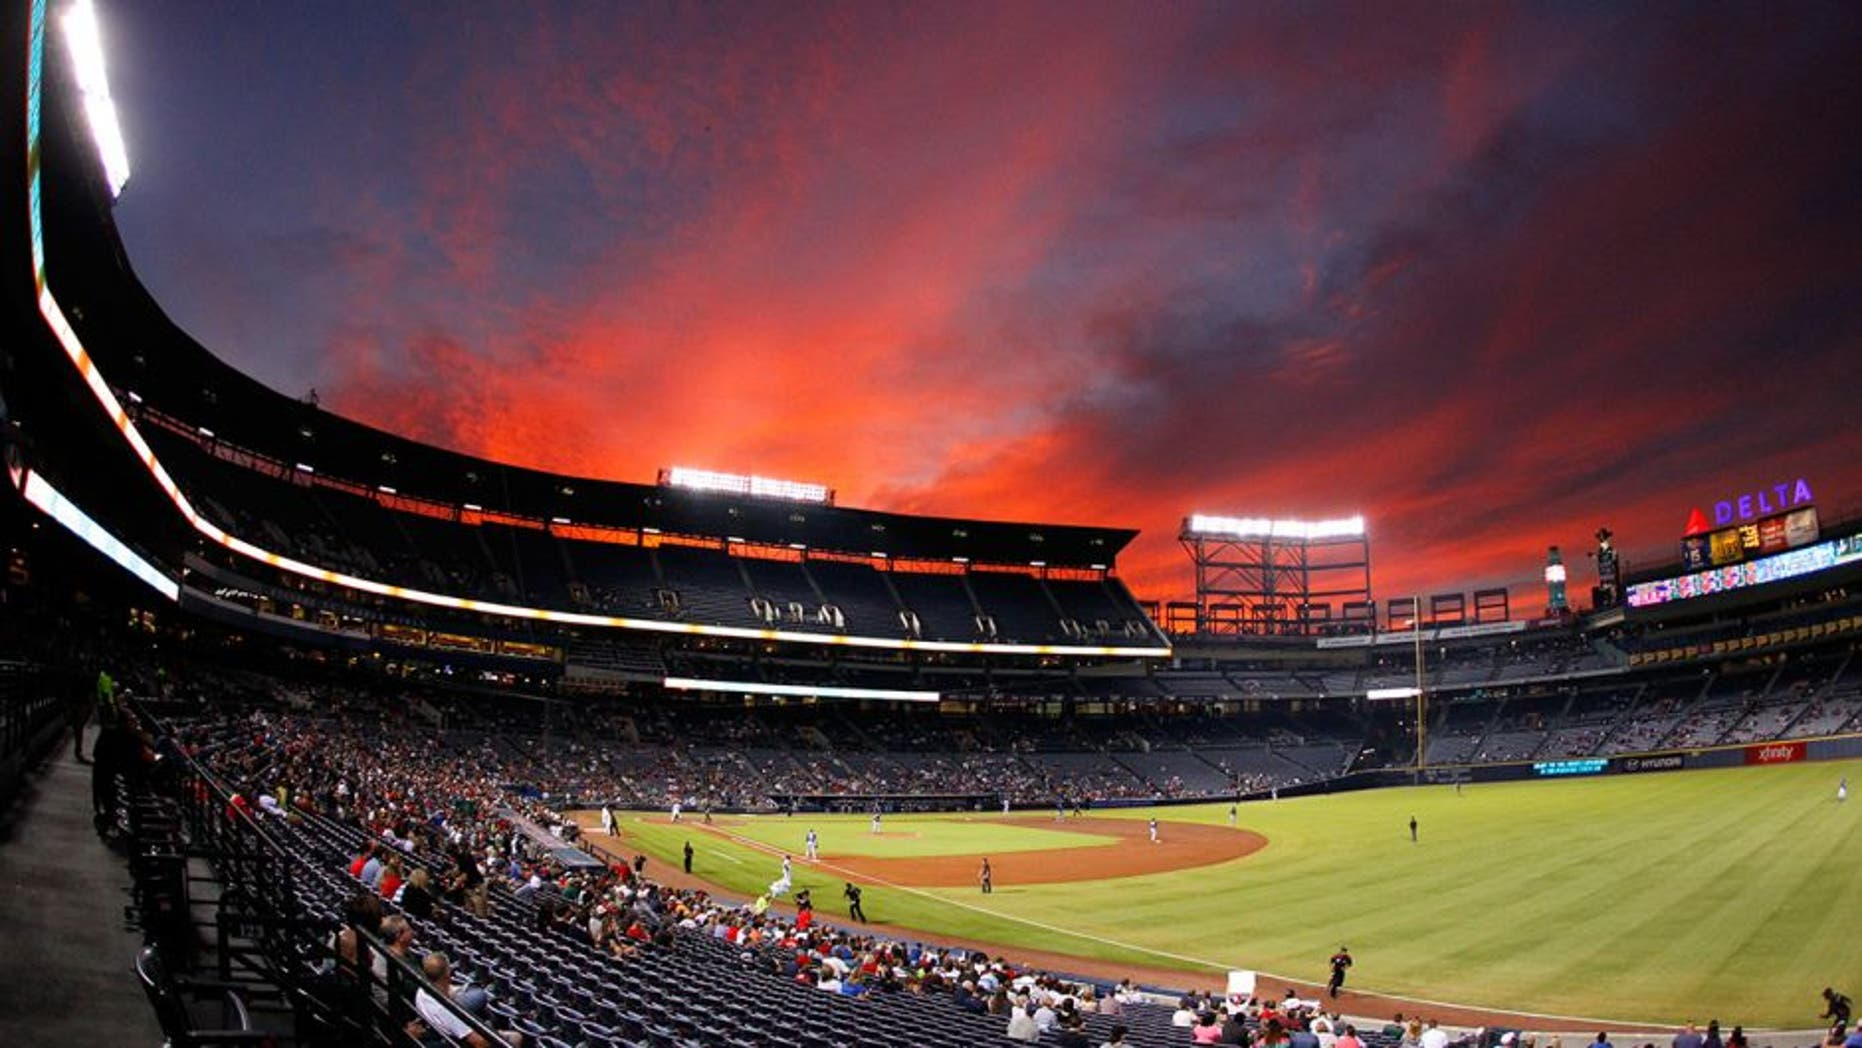 Sep 15, 2015; Atlanta, GA, USA; A general view of the sunset at Turner Field during the third inning of the game between the Atlanta Braves and the Toronto Blue Jays. Mandatory Credit: Brett Davis-USA TODAY Sports